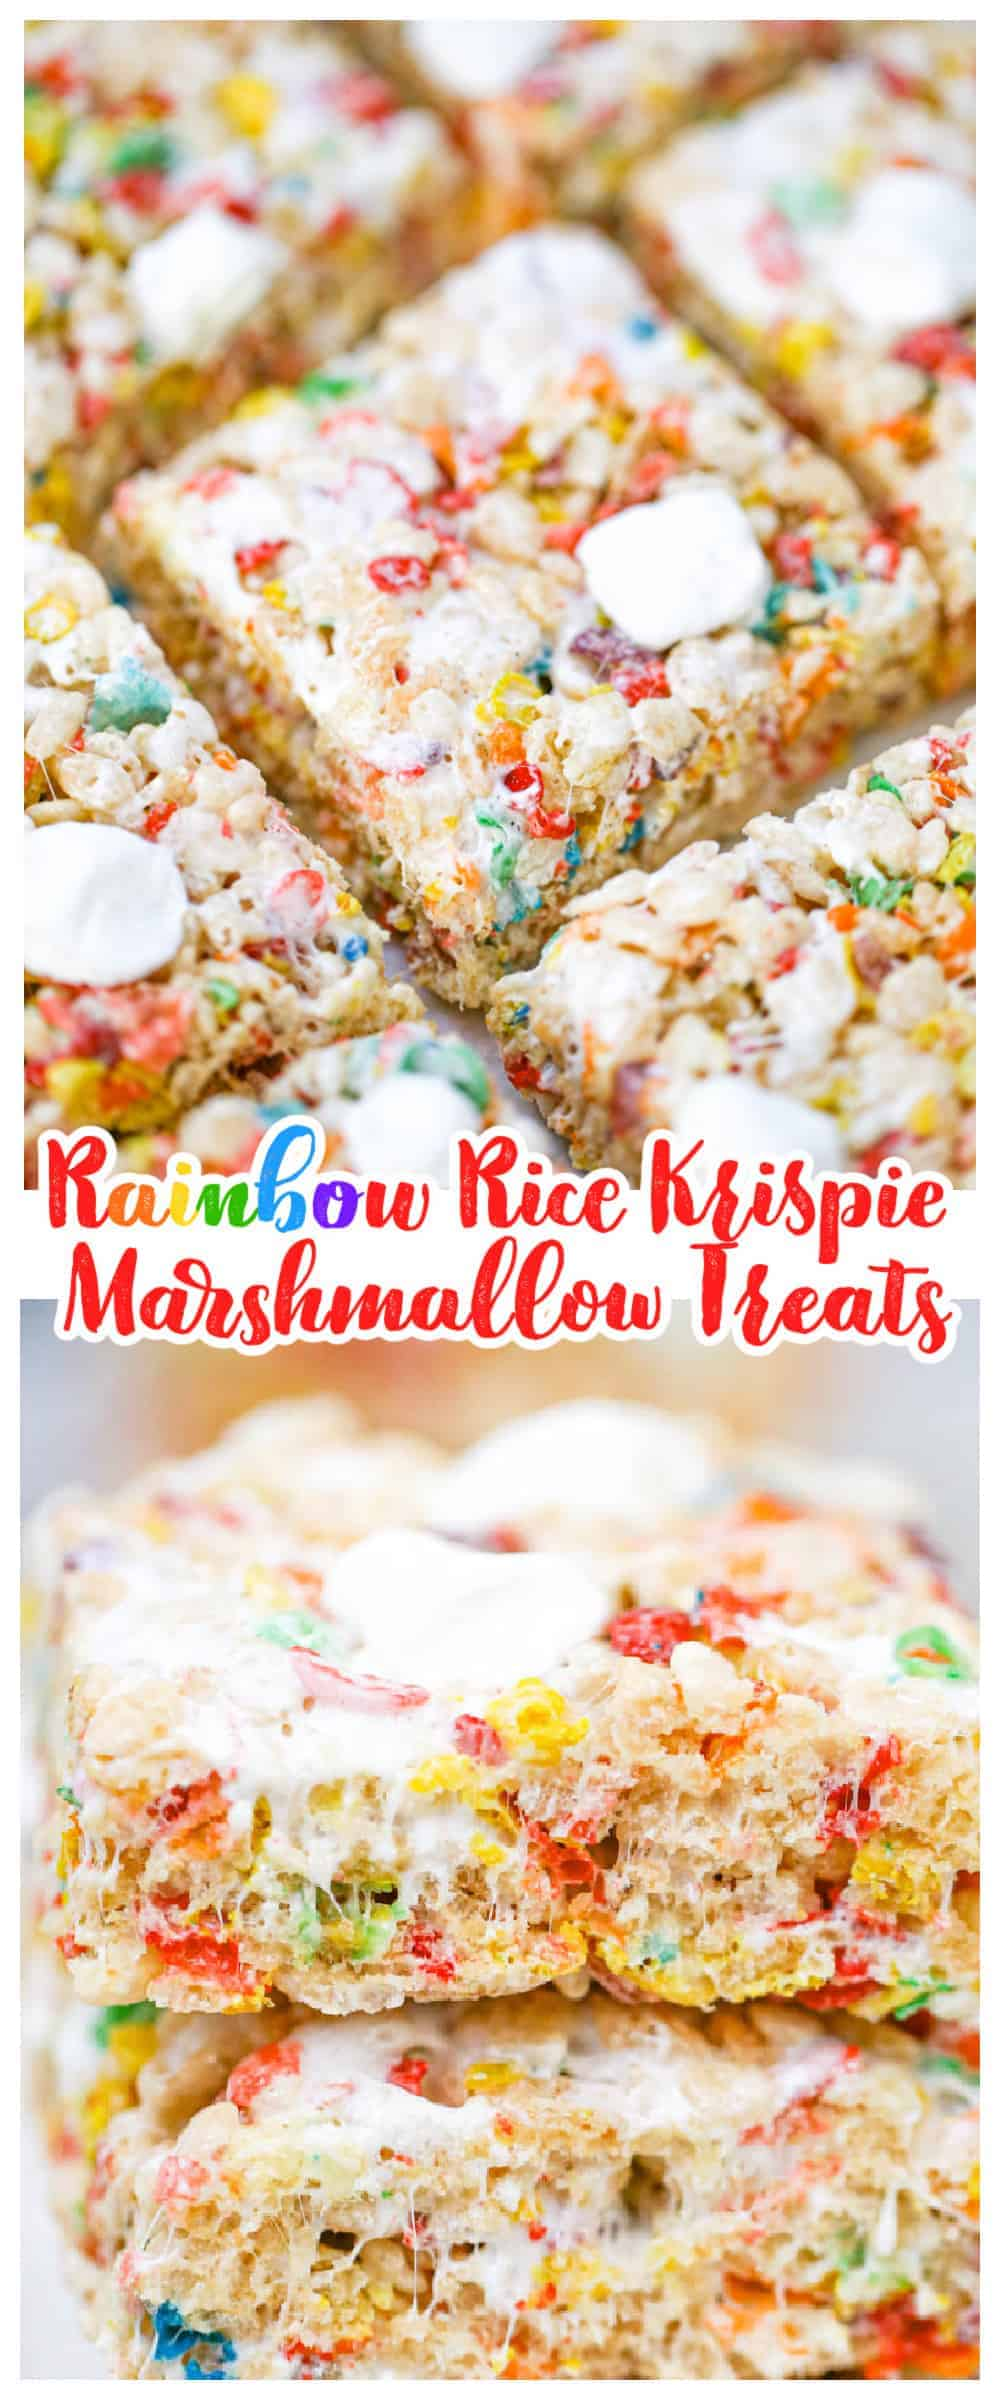 Rainbow Rice Krispie Marshmallow Treats